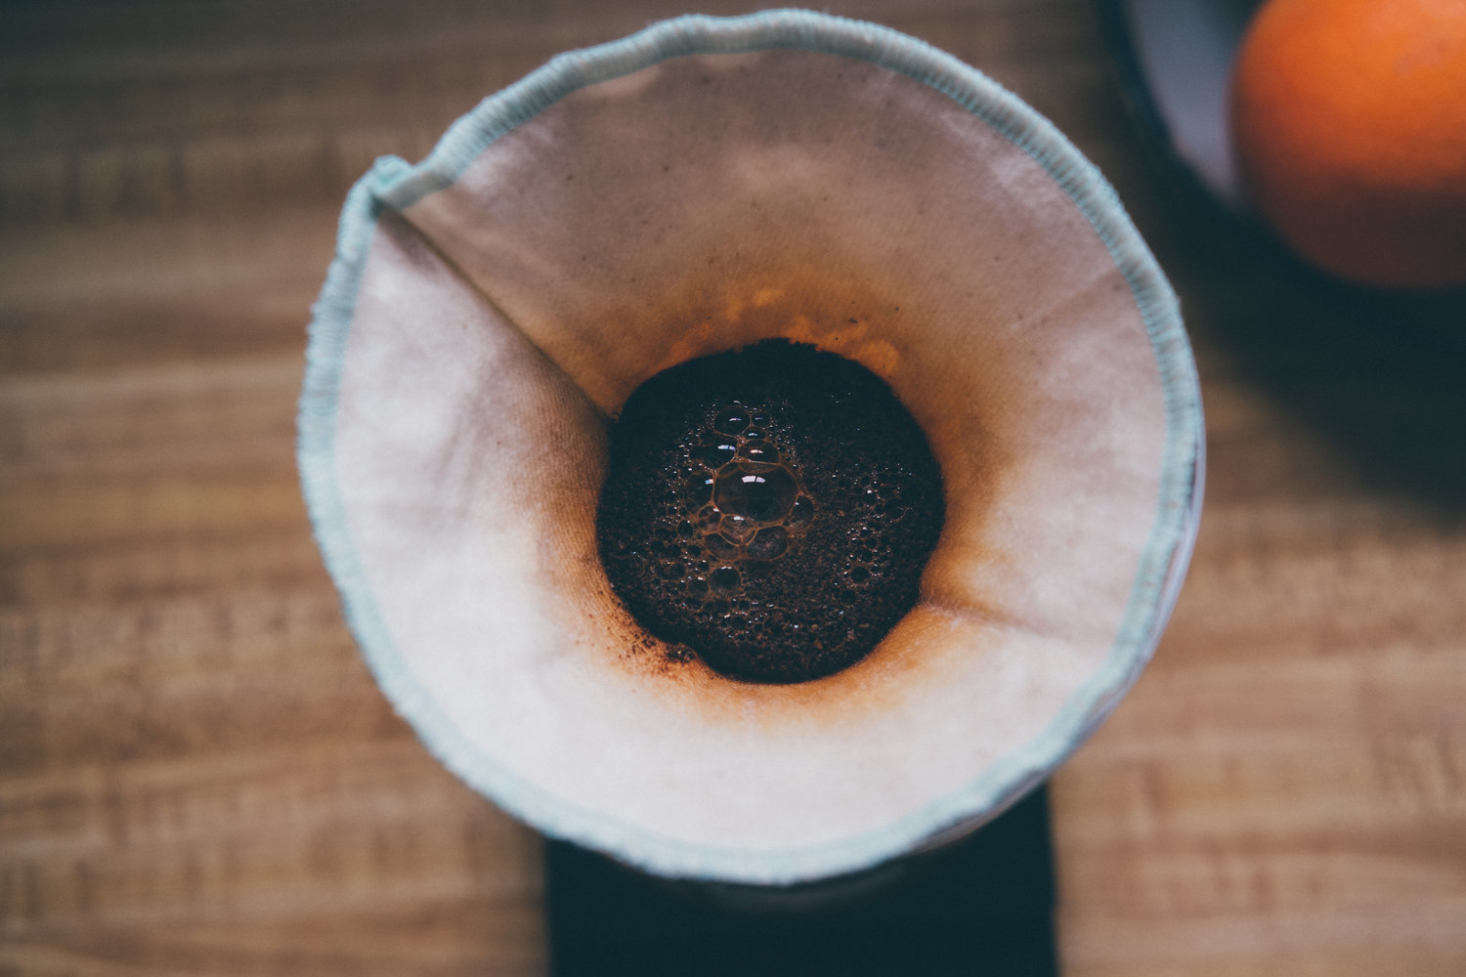 Ebb Coffee Filters are compatible with several kinds of pour-over coffee makers, including theChemex and V60. All materials are grown and made entirely in the US and are wholly organic: &#8